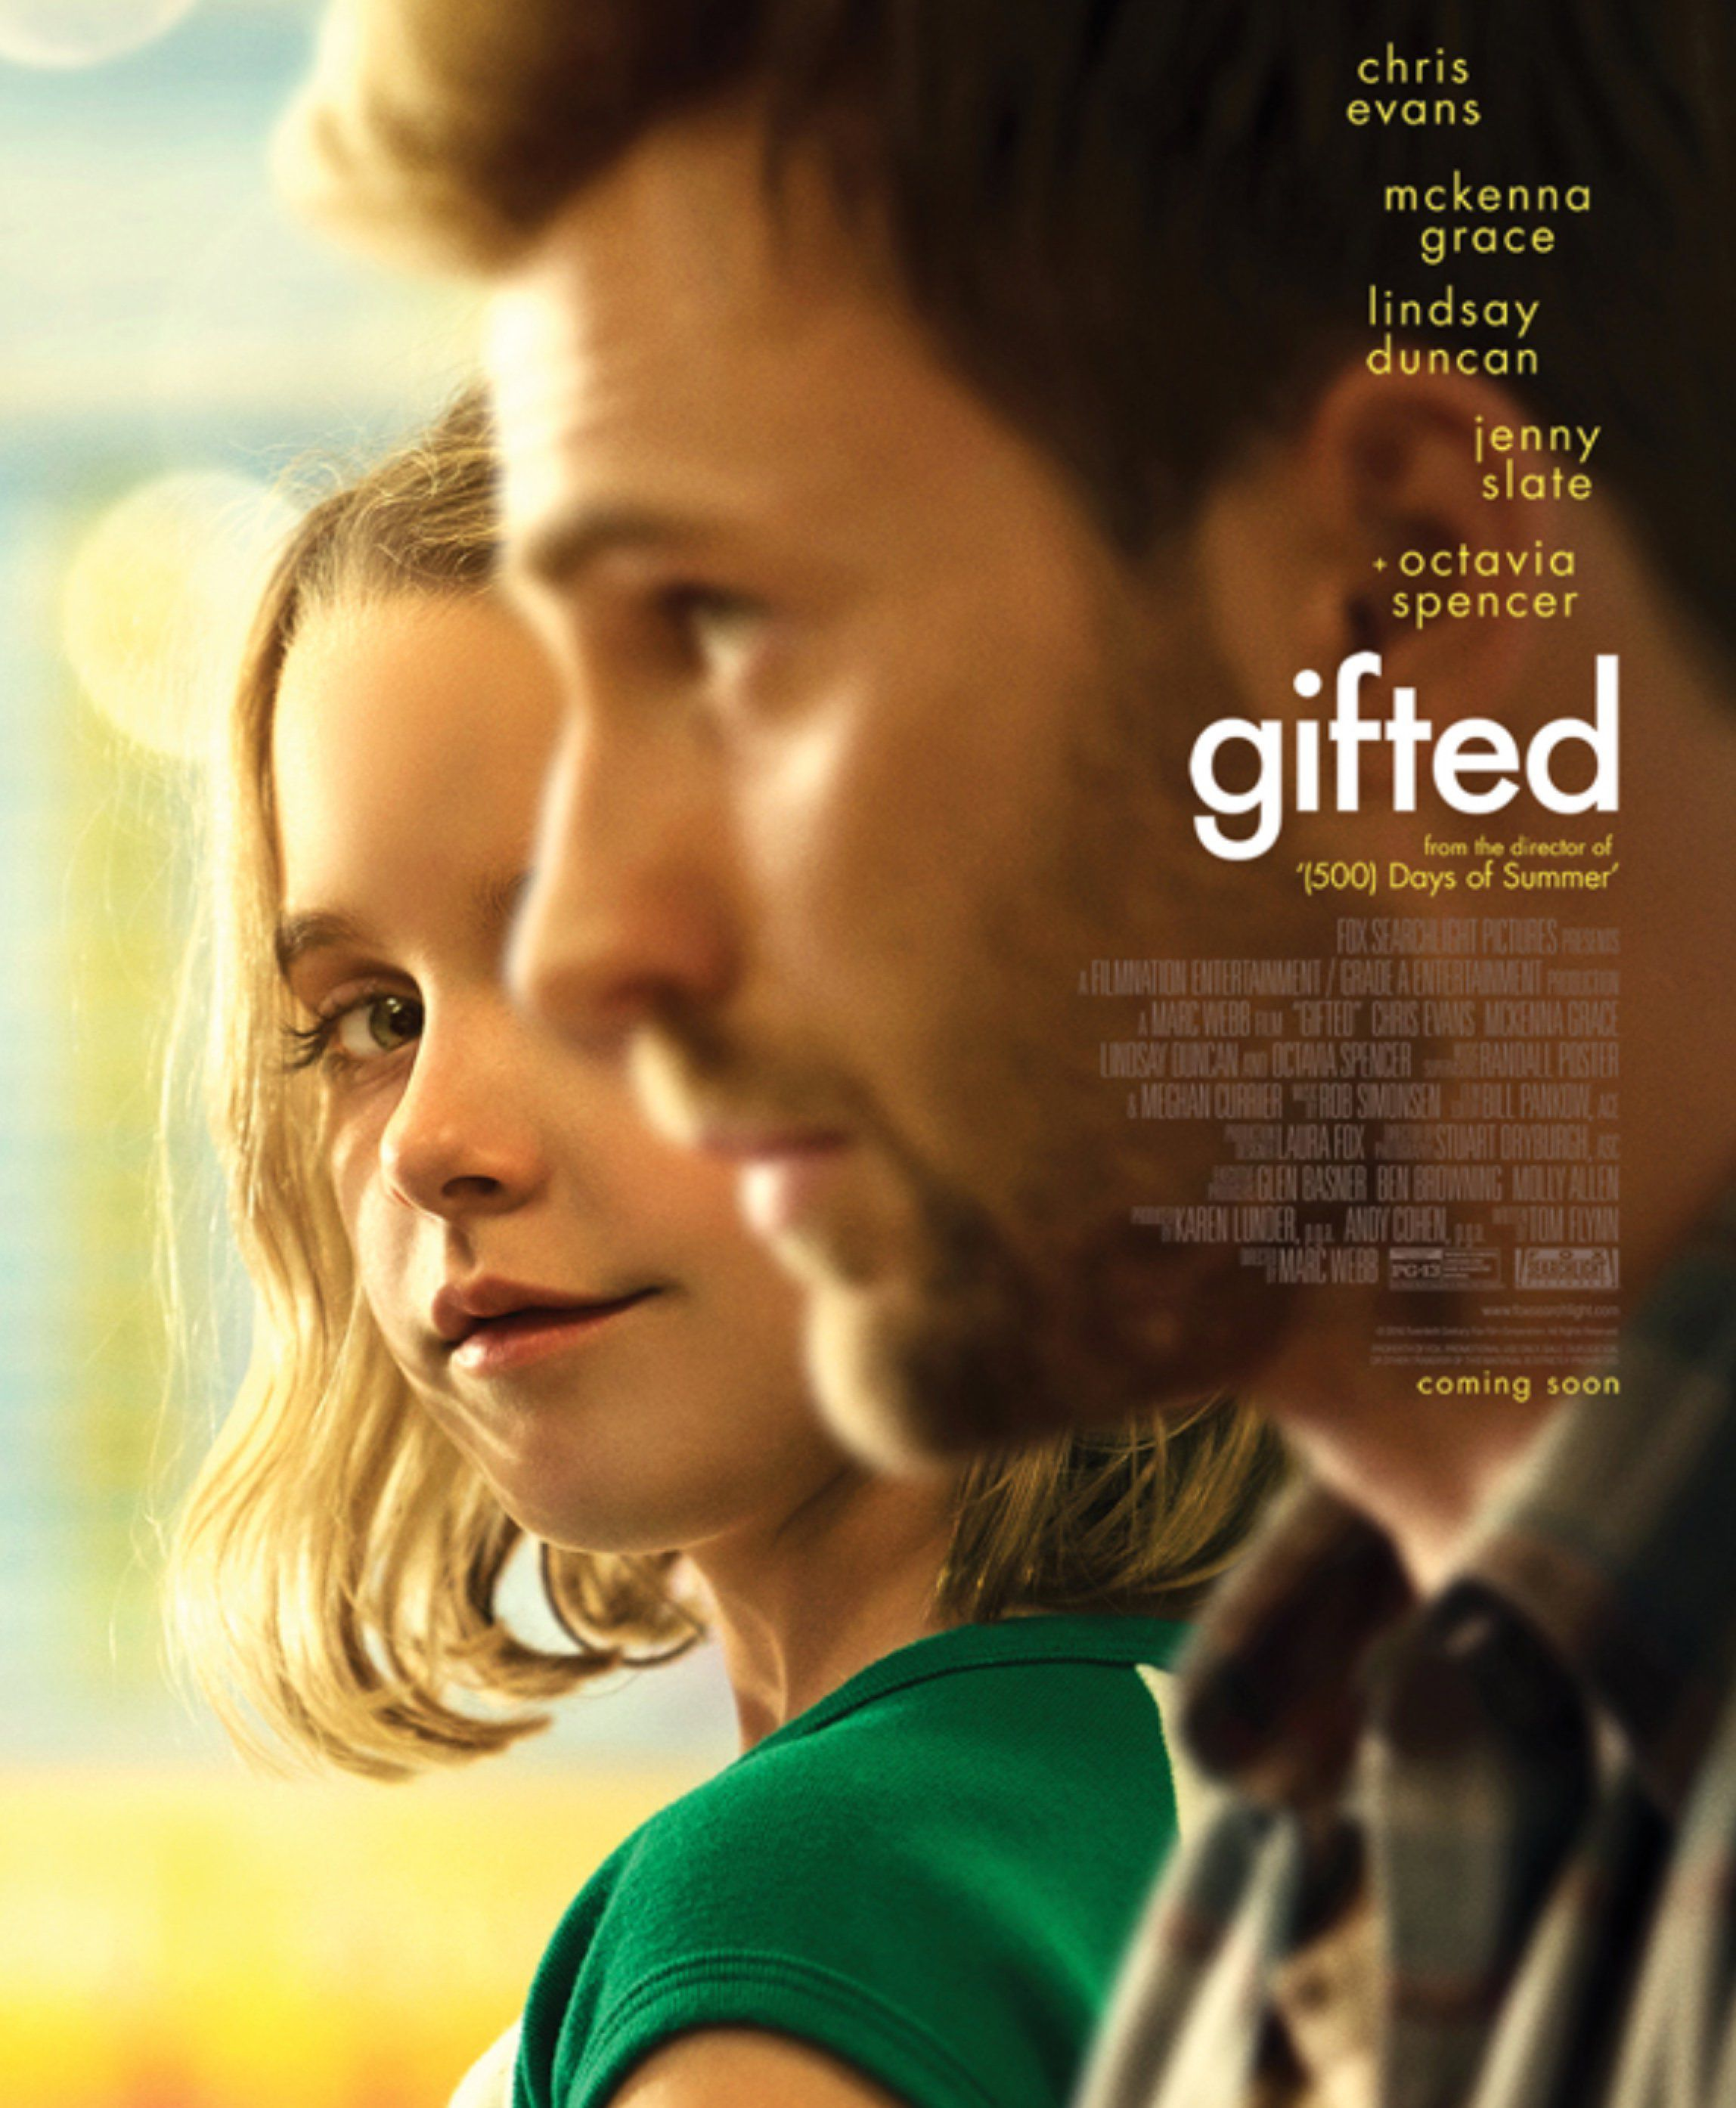 Gifted il Dono del Talento - Chris Evans - McKenna Grace - Lindsay Duncan - Jenny Slate - Octavia Spencer - film poster  Mary